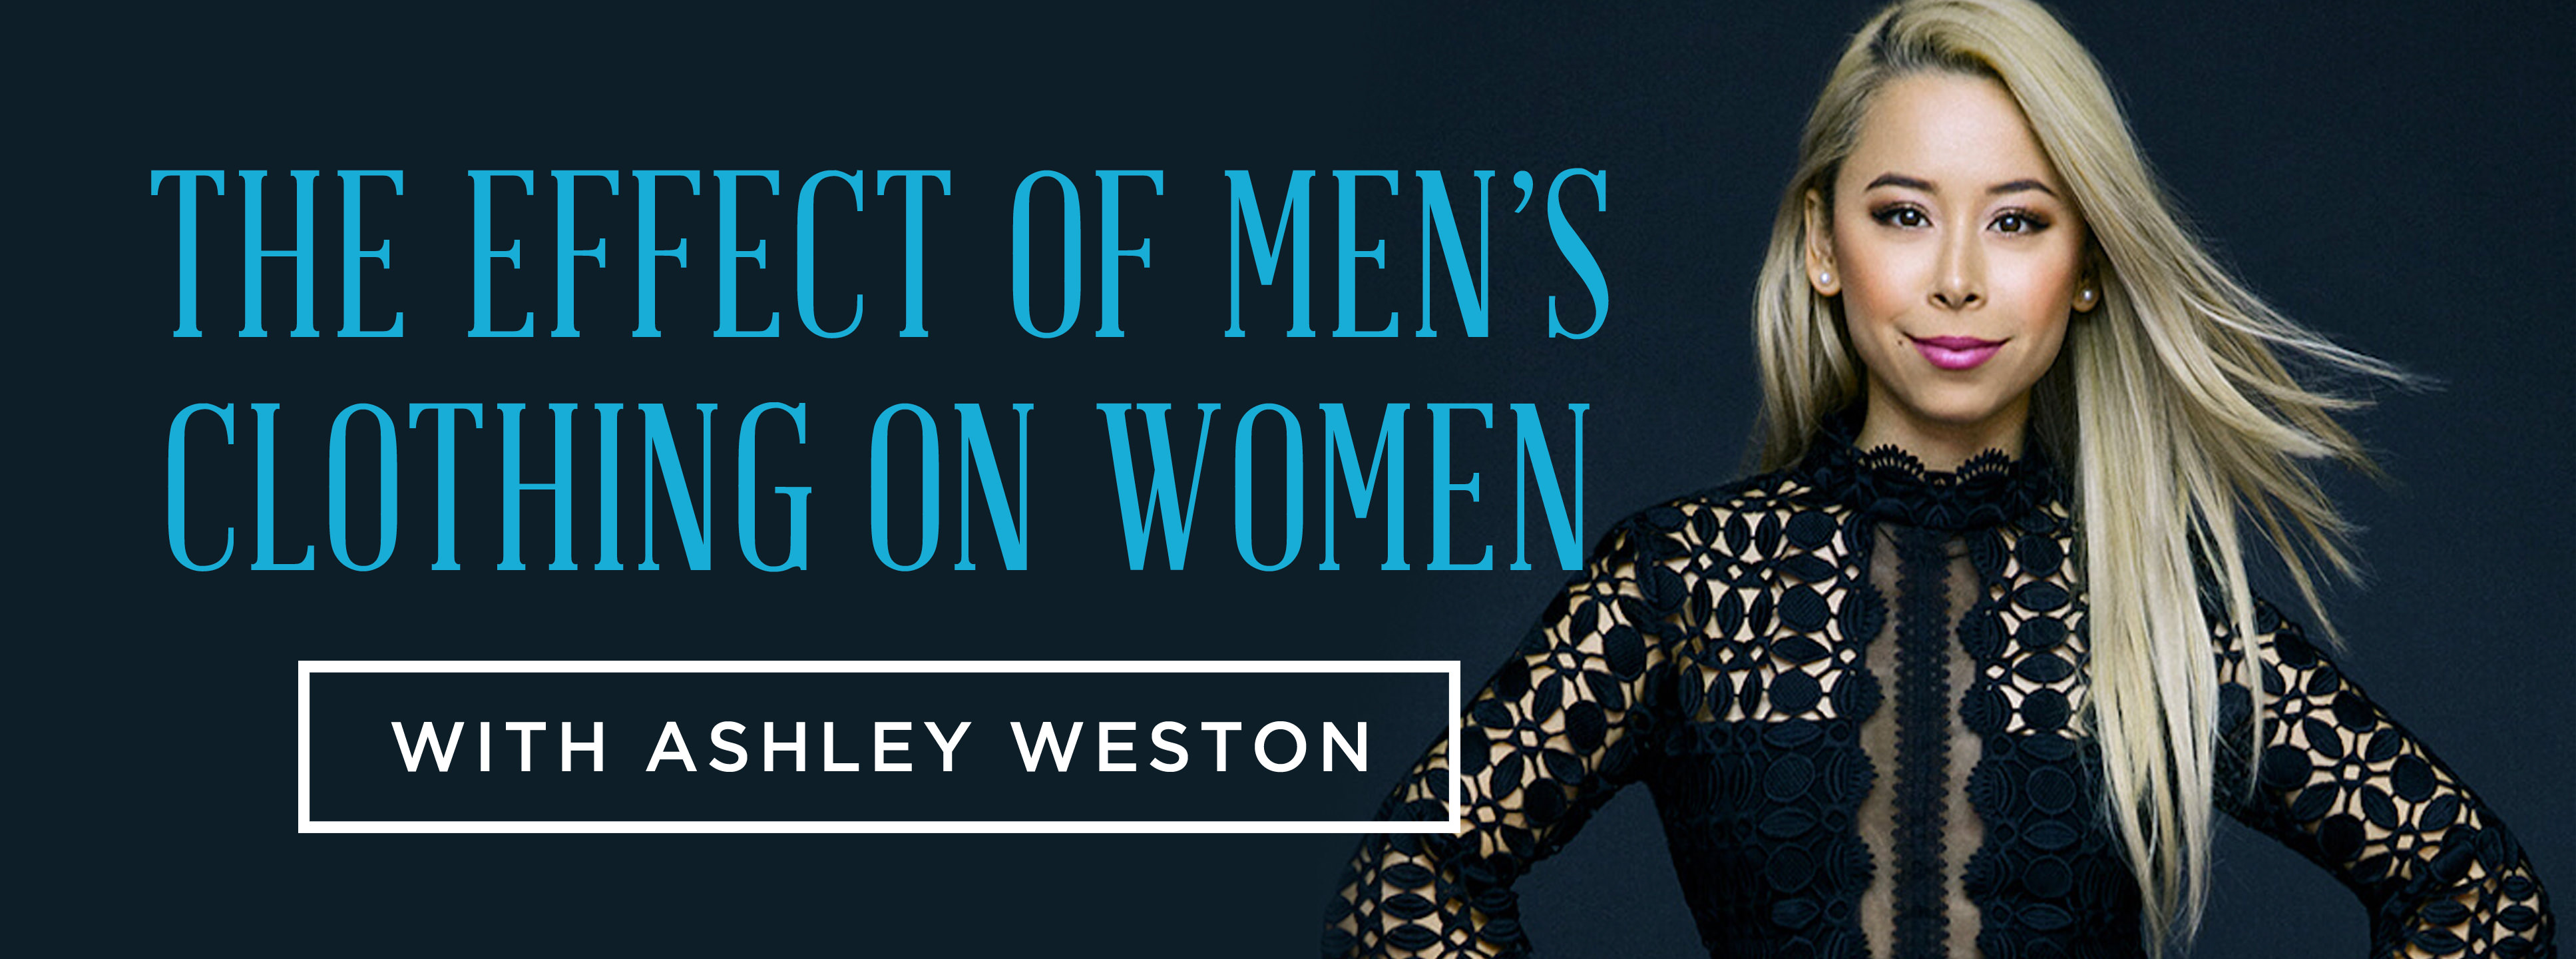 3dc2ee4d The Effect of Men's Clothing on Women with Ashley Weston ...